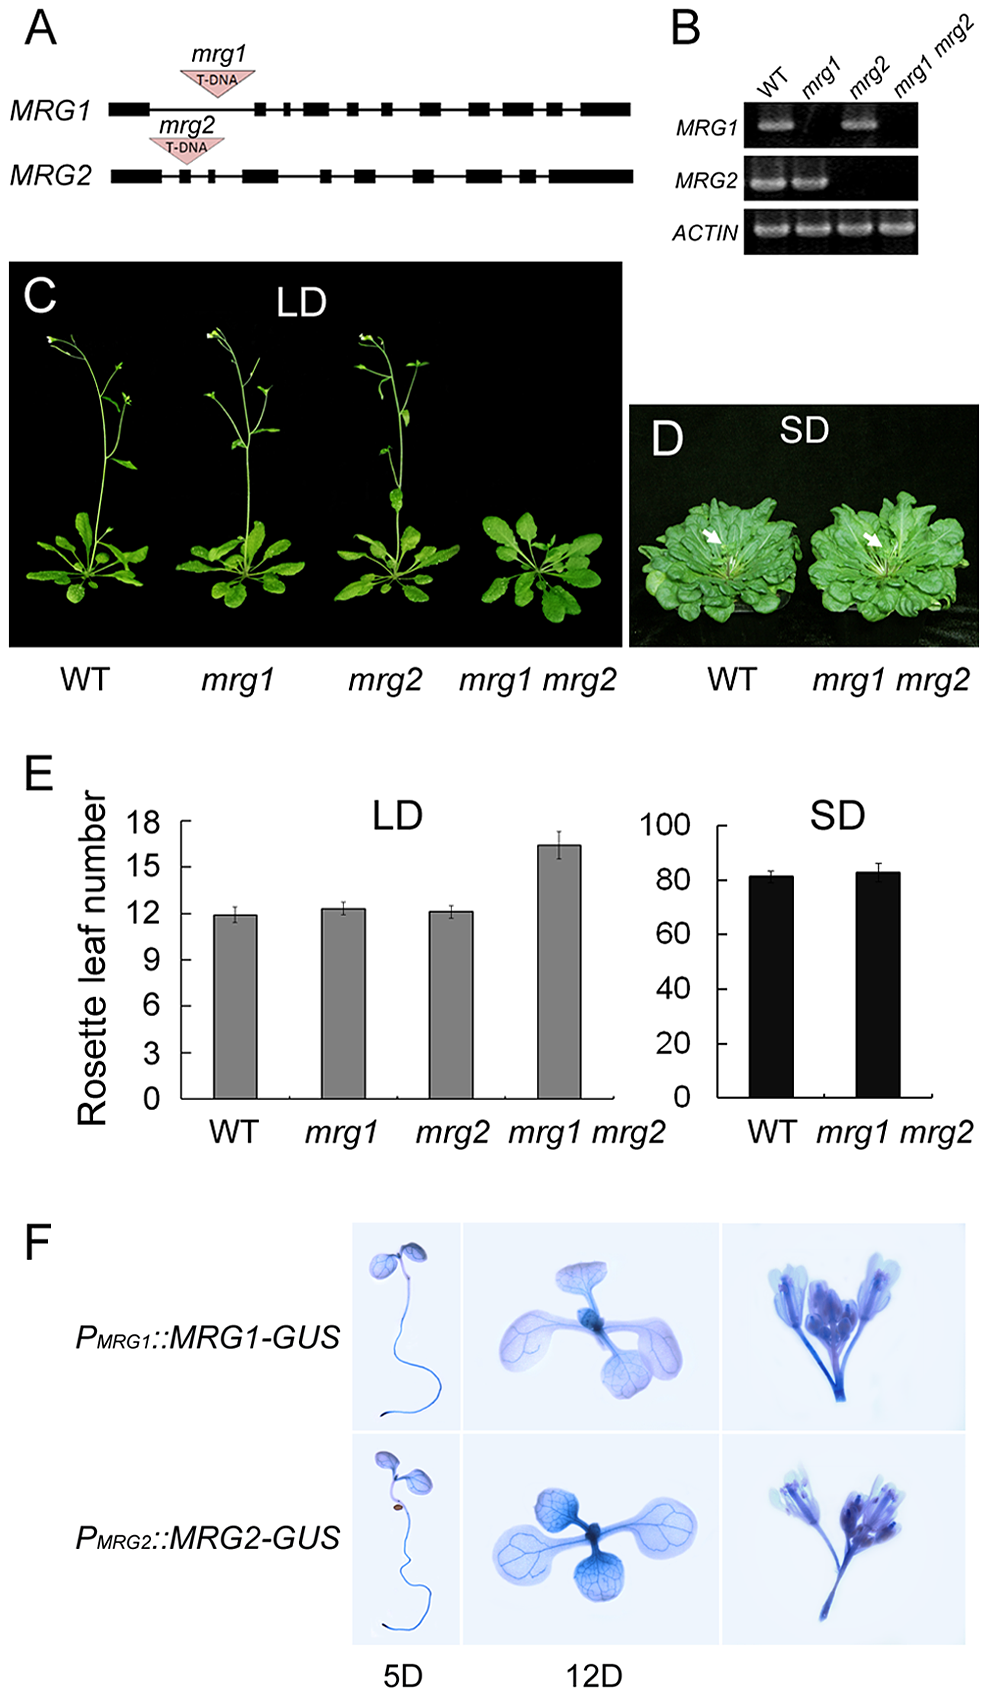 MRG1 and MRG2 act redundantly in flowering time control of <i>Arabidopsis</i> in the photoperiodic flowering pathway.